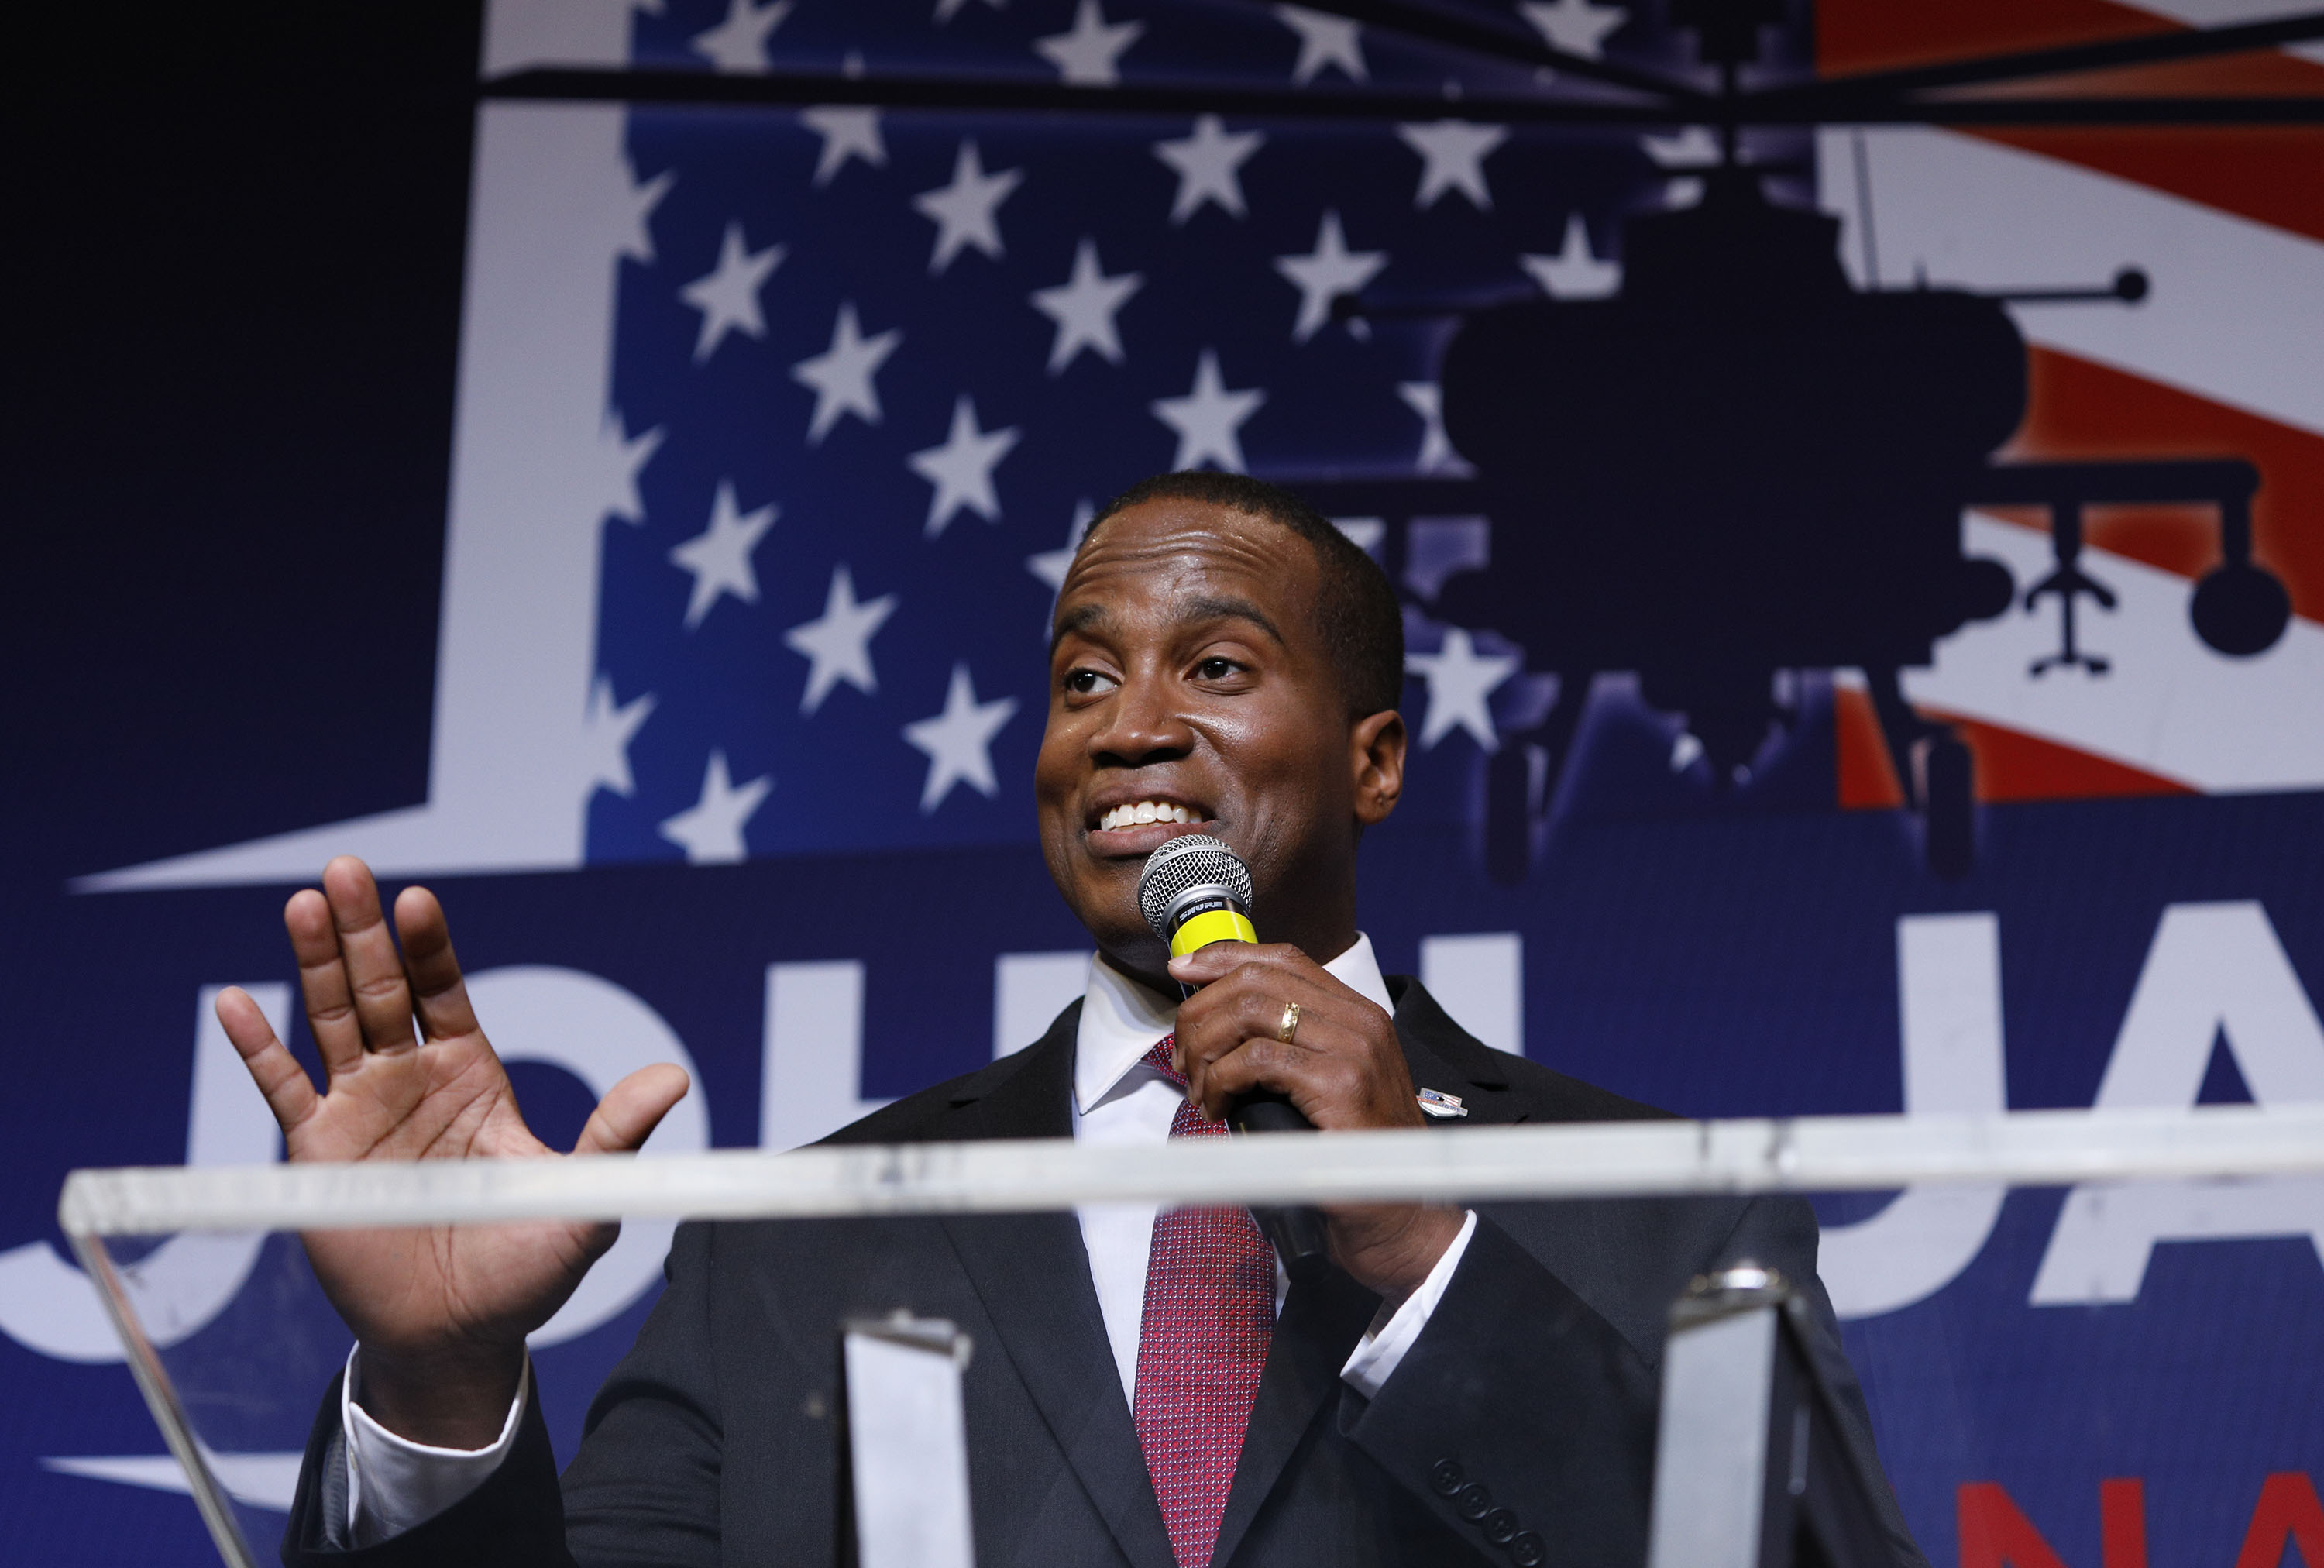 John James, Michigan GOP Senate candidate, speaks at an election night event after winning his primary election on Aug. 7th, 2018 in Detroit, Michigan.